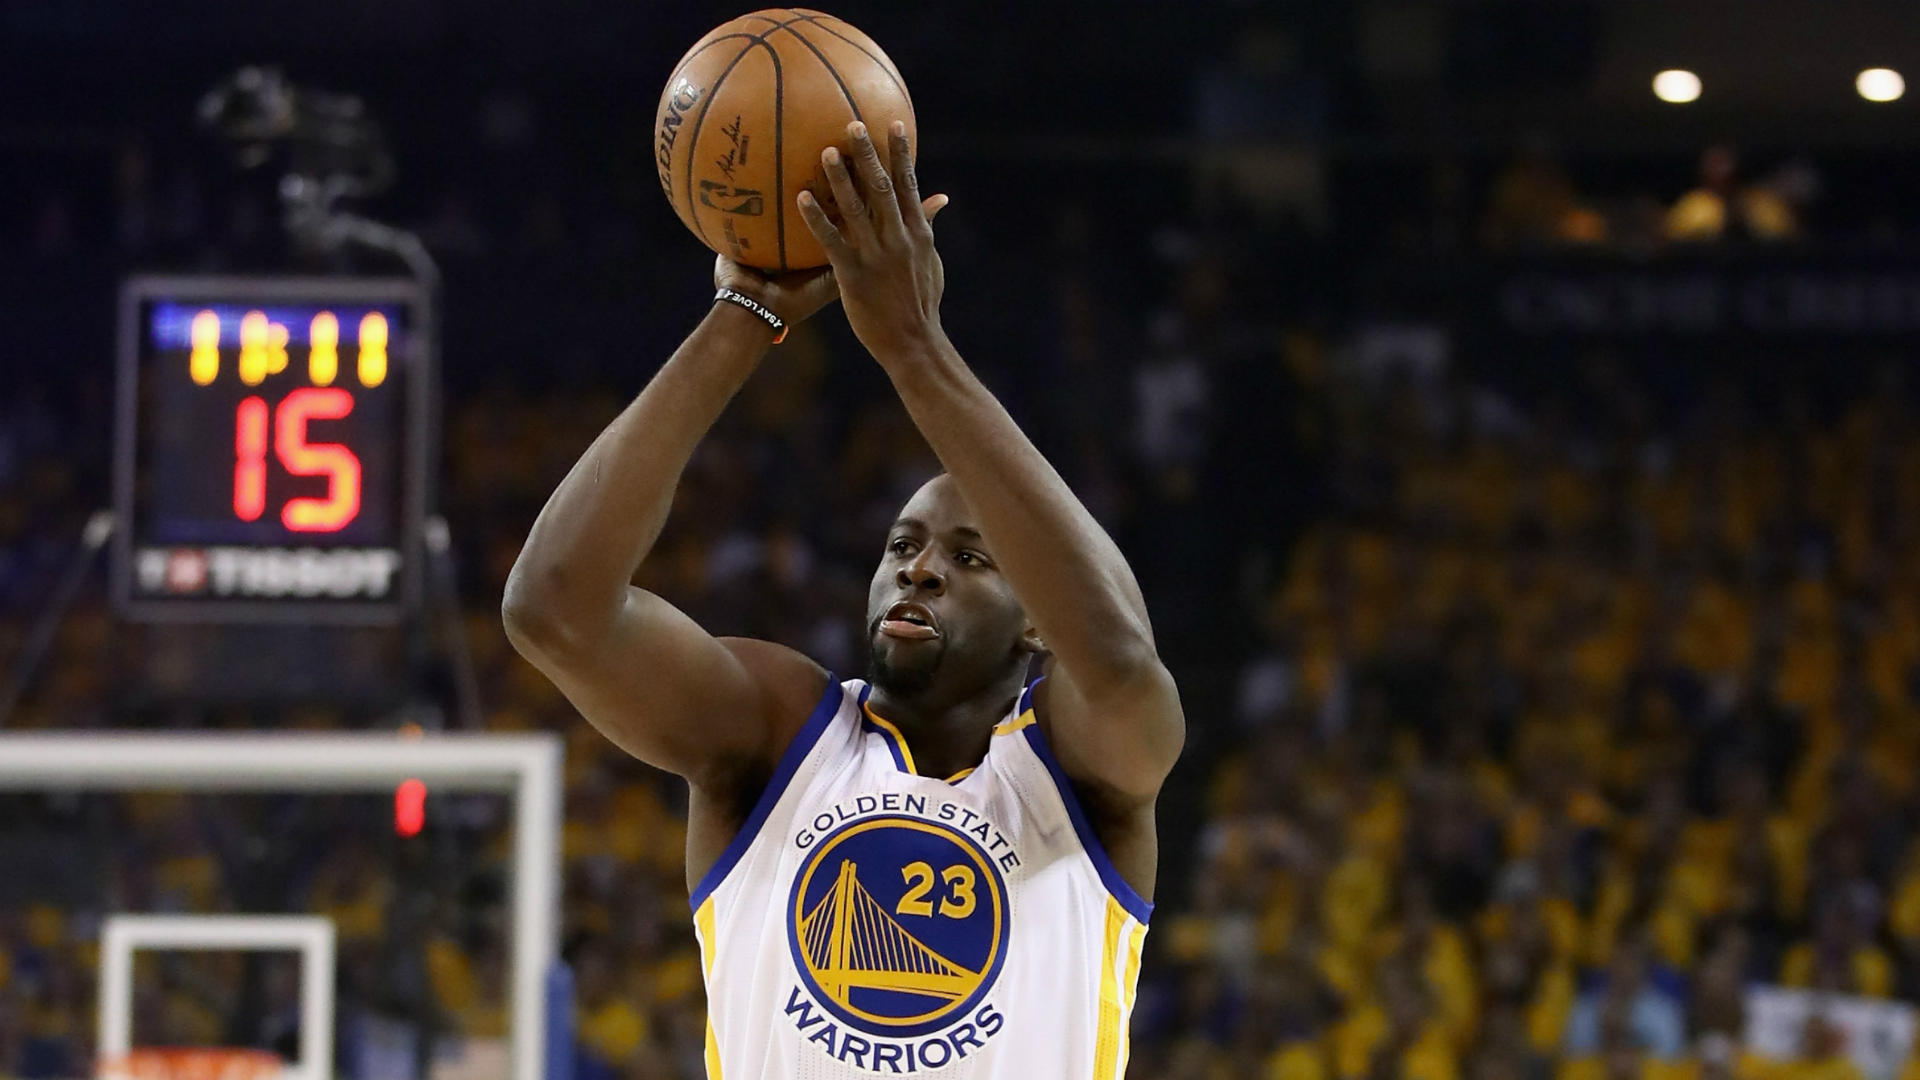 Draymond Green injury update: Warriors F expected to play against Lakers in final preseason game